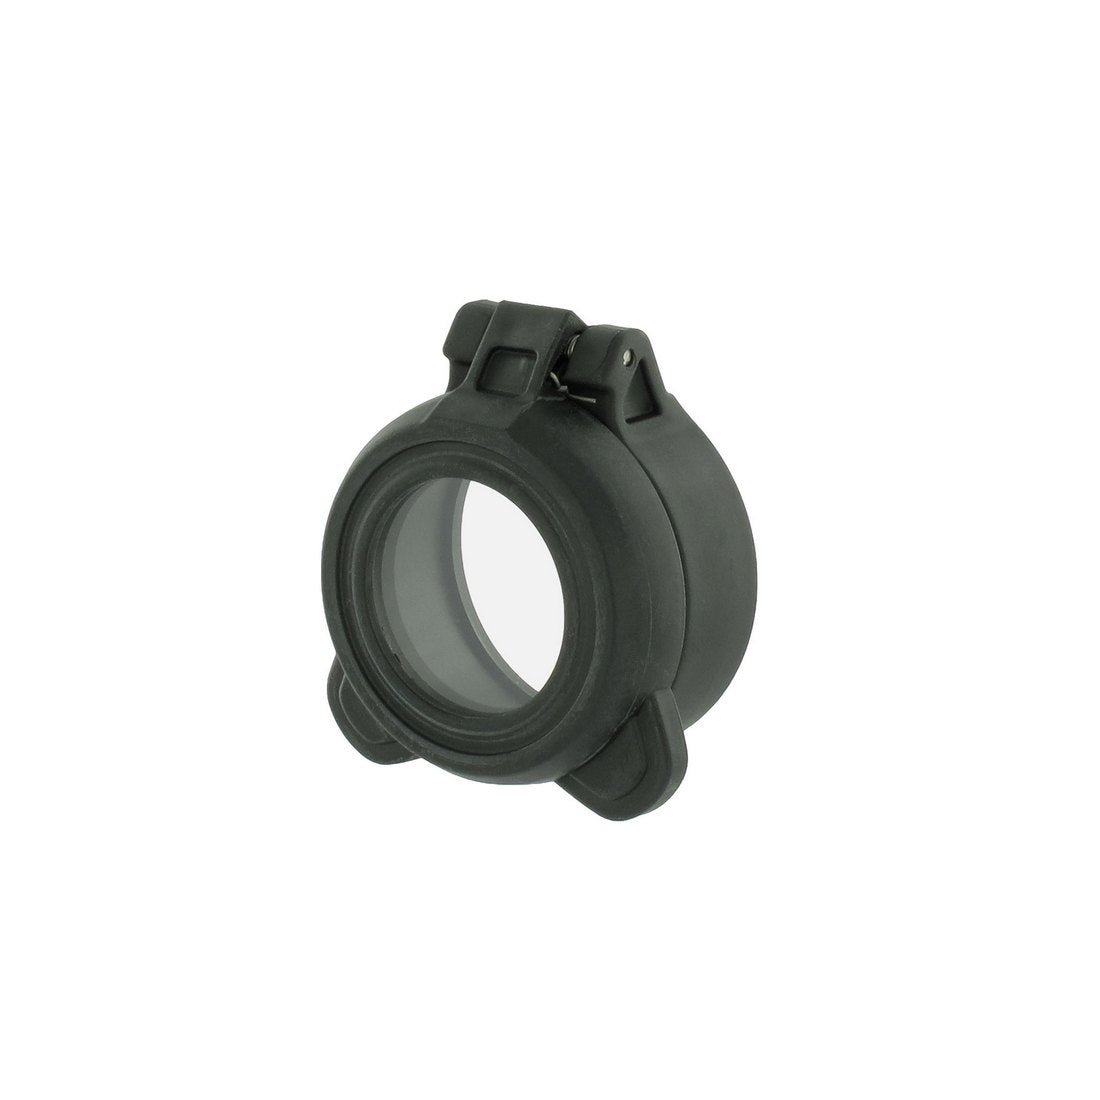 Aimpoint 12241 Flip-Up Front Cover Transparent - Security Pro USA